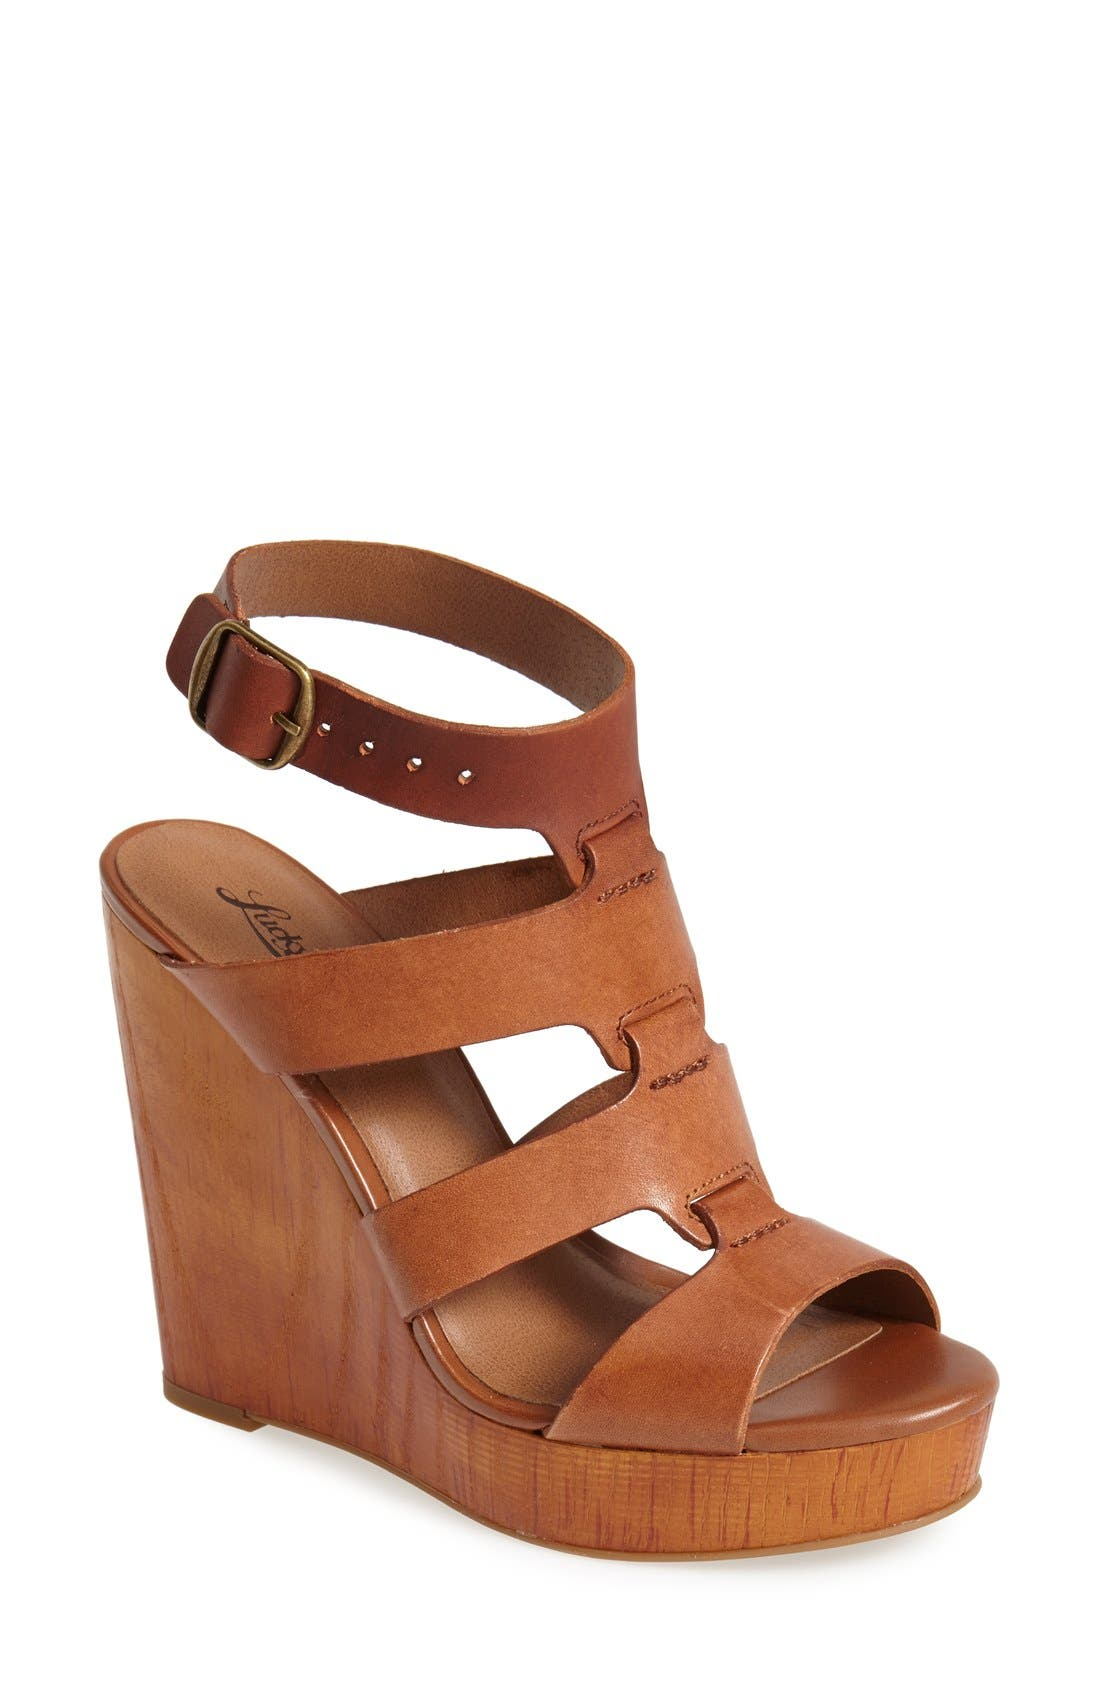 Alternate Image 1 Selected - Lucky Brand 'Roselyn' Leather Caged Platform Sandal (Women)